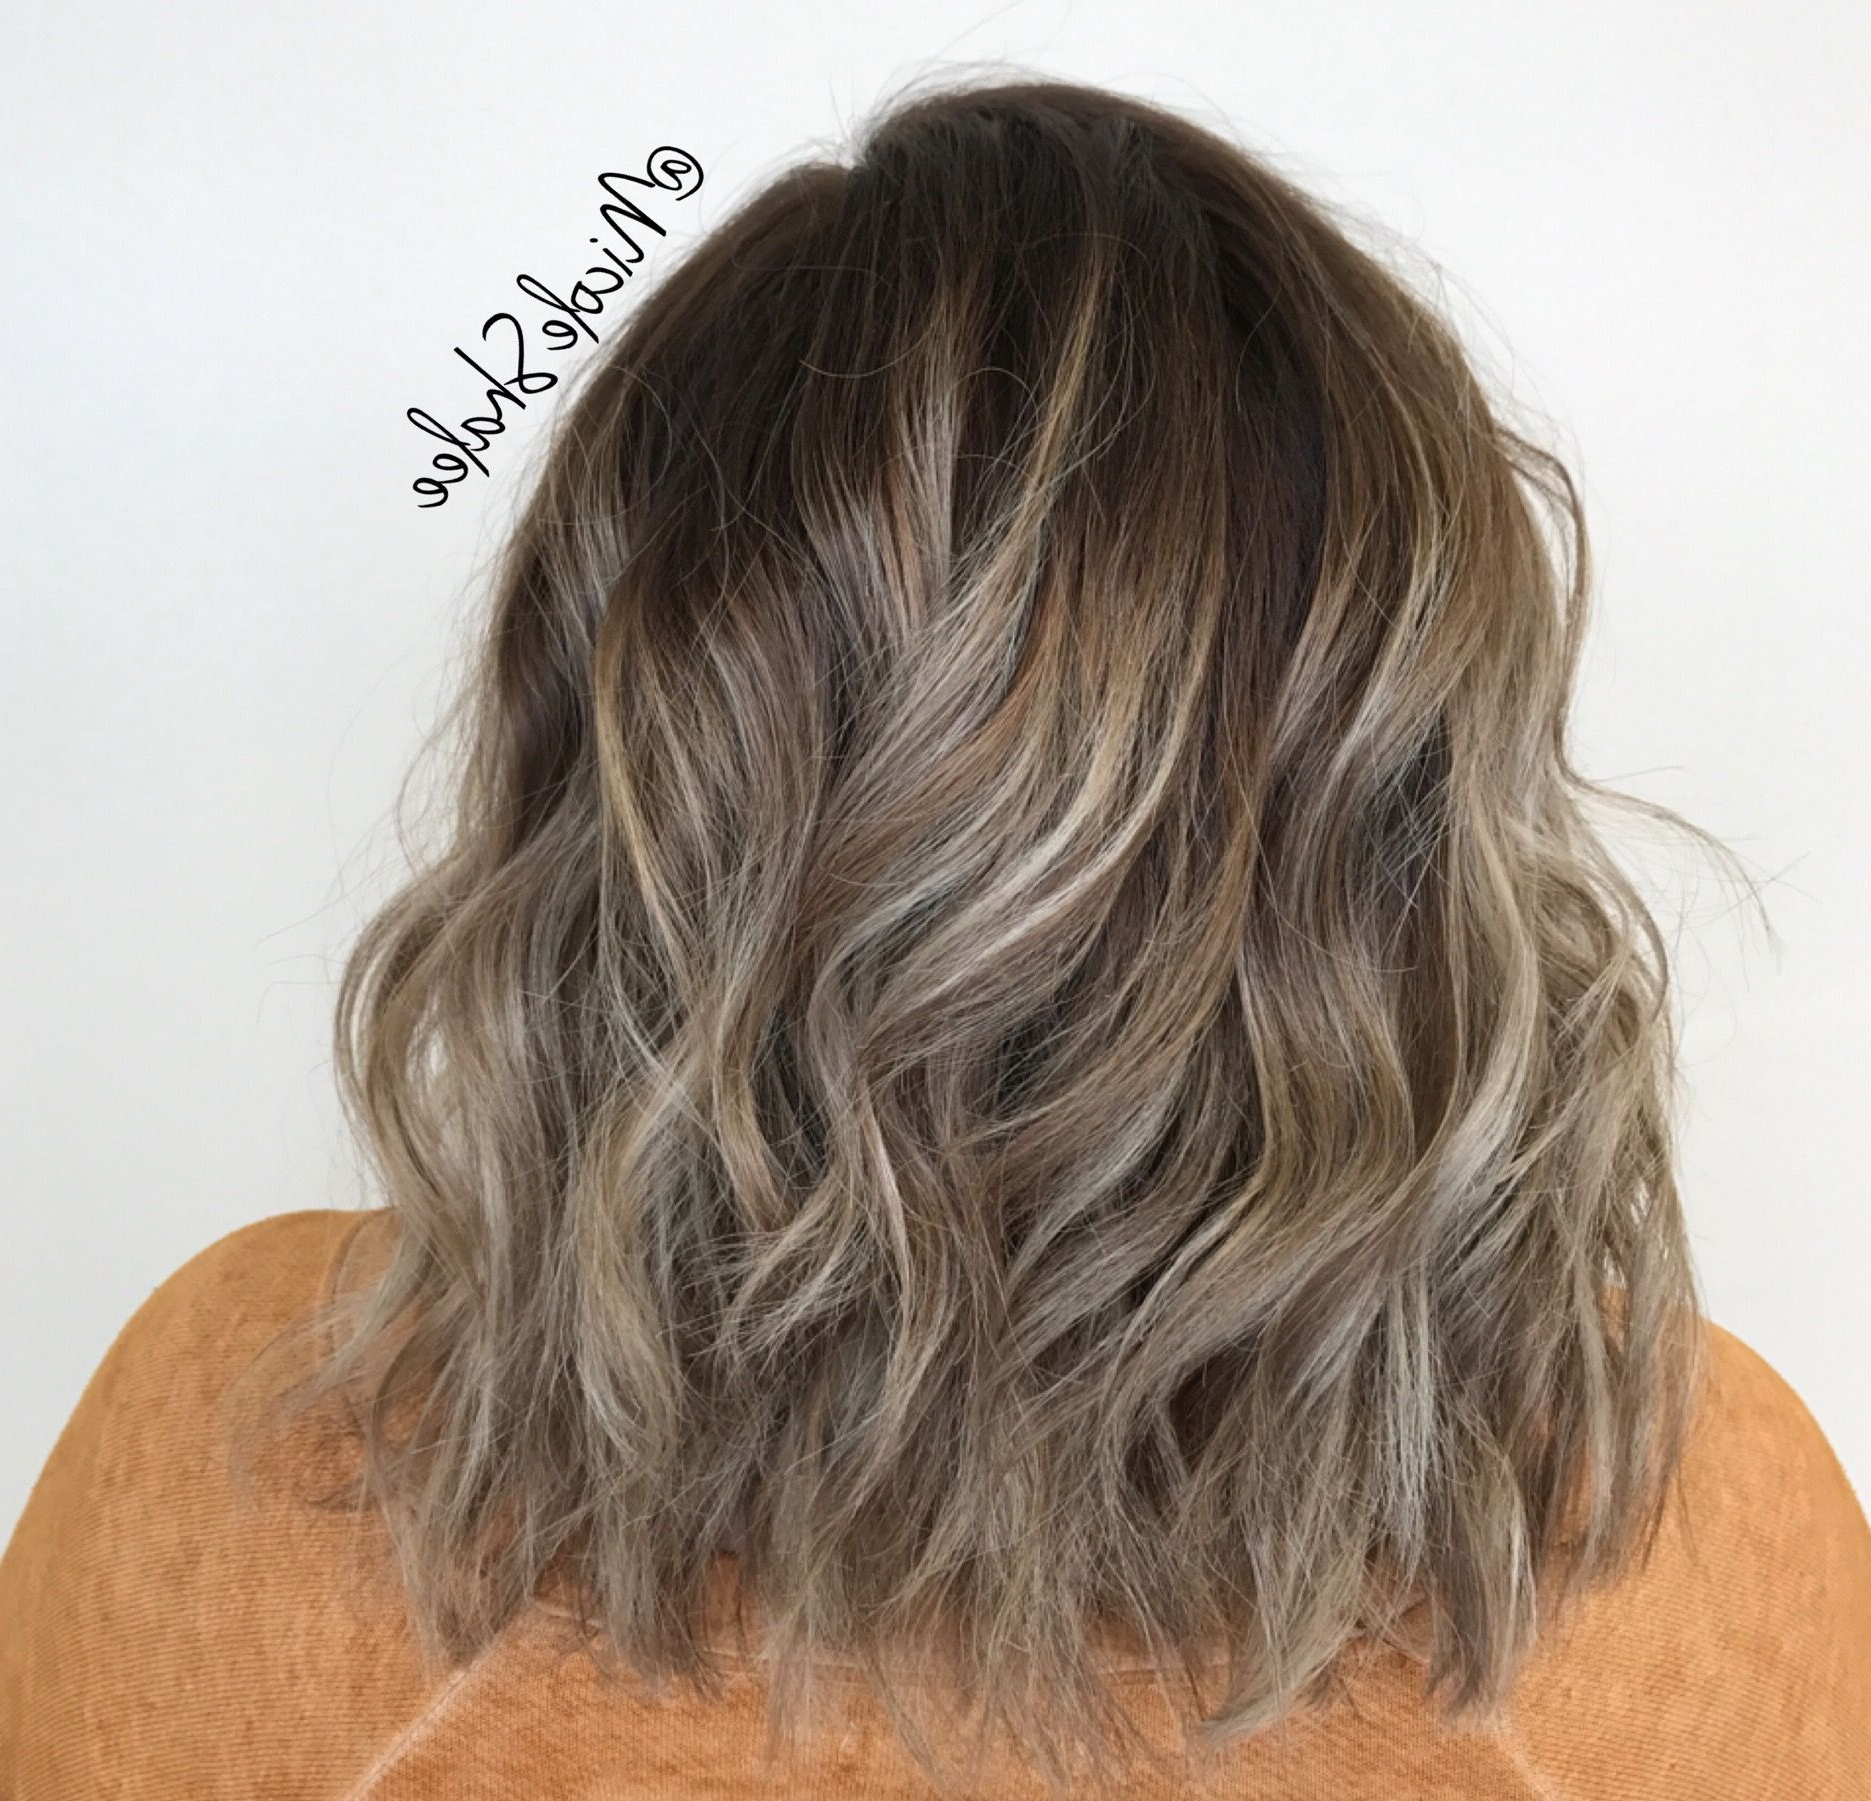 Well Liked Textured Bronde Bob Hairstyles With Silver Balayage Inside Shadow Root, Smudge Root, Balayage, Warm Highlights, Long (Gallery 5 of 20)